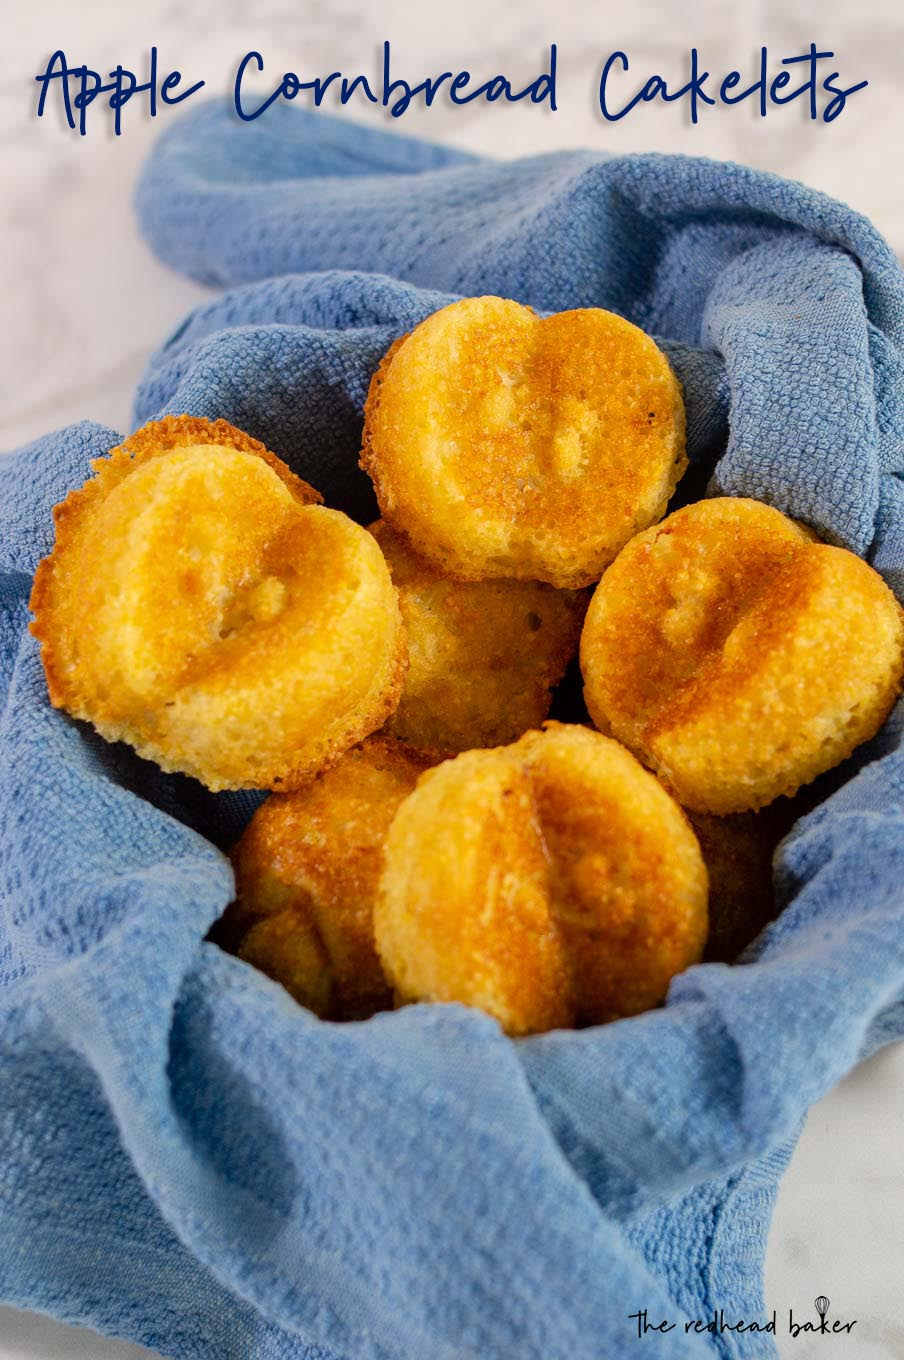 Apple cornbread cakelets in a blue-towel-lined basket